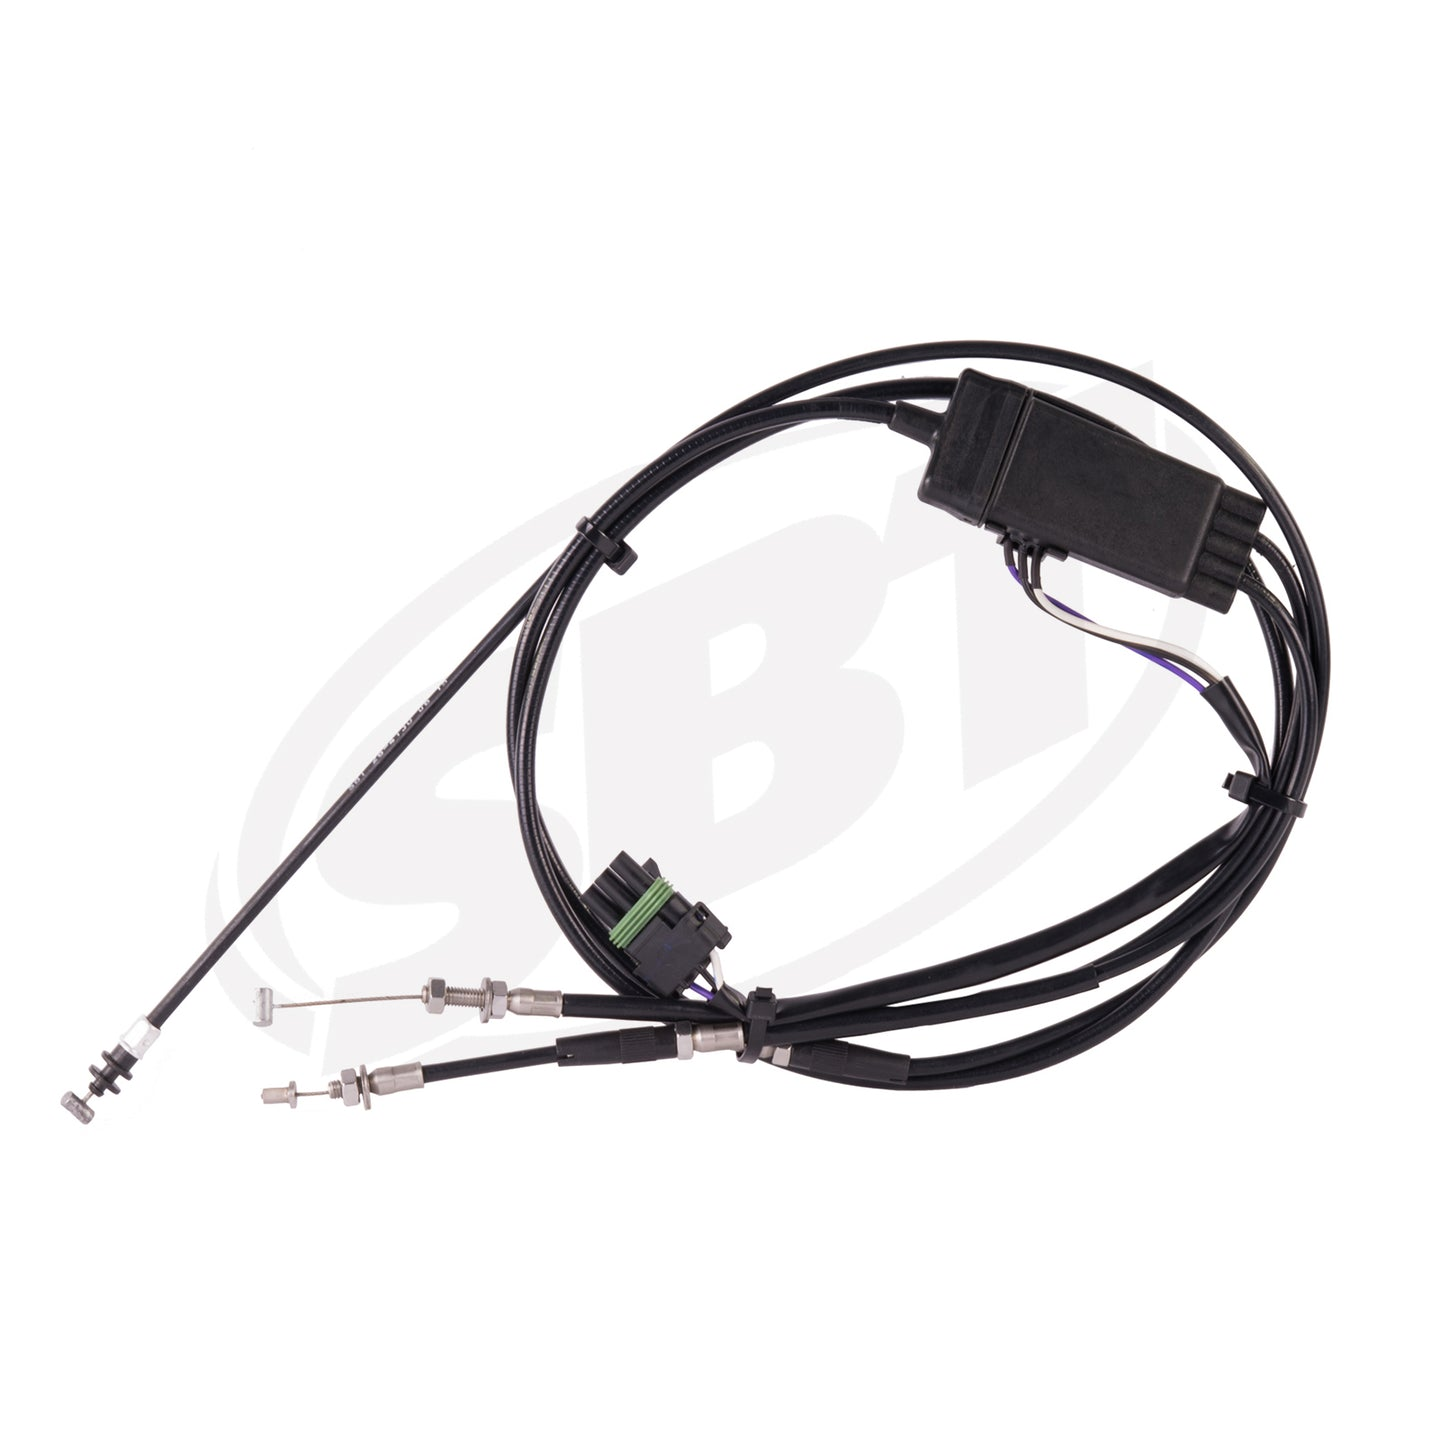 SBT Sea-Doo Throttle Cable XP LTD /XP 277000912 1999 2000 2001 2002